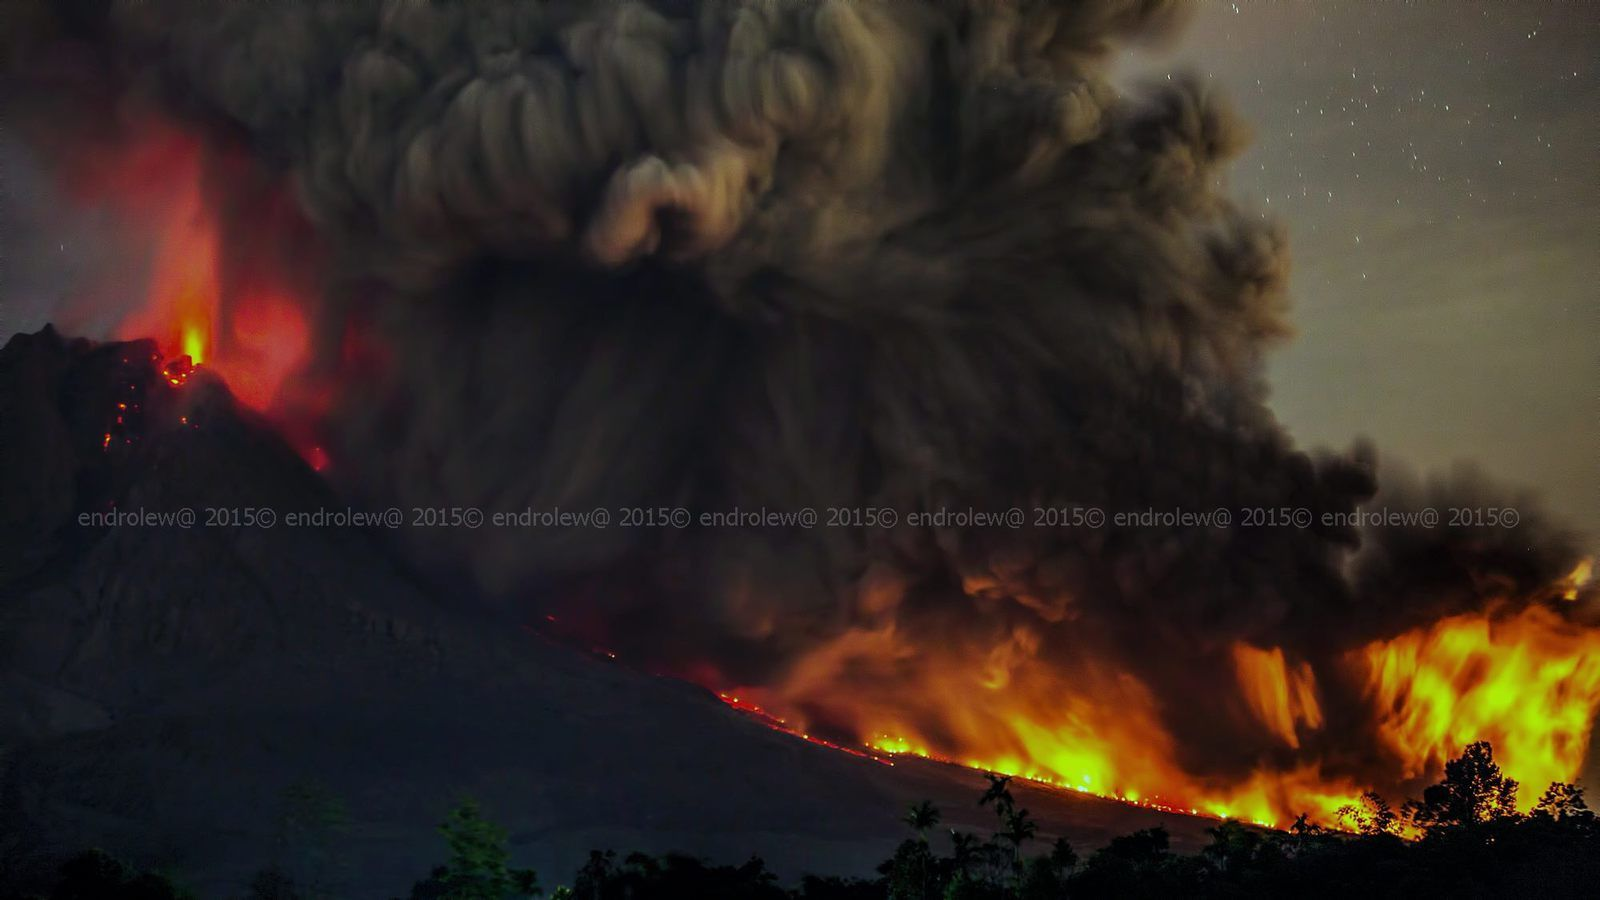 Sinabung - 06.28.2015 / 2:39 & 2:40 - photos endrolew@